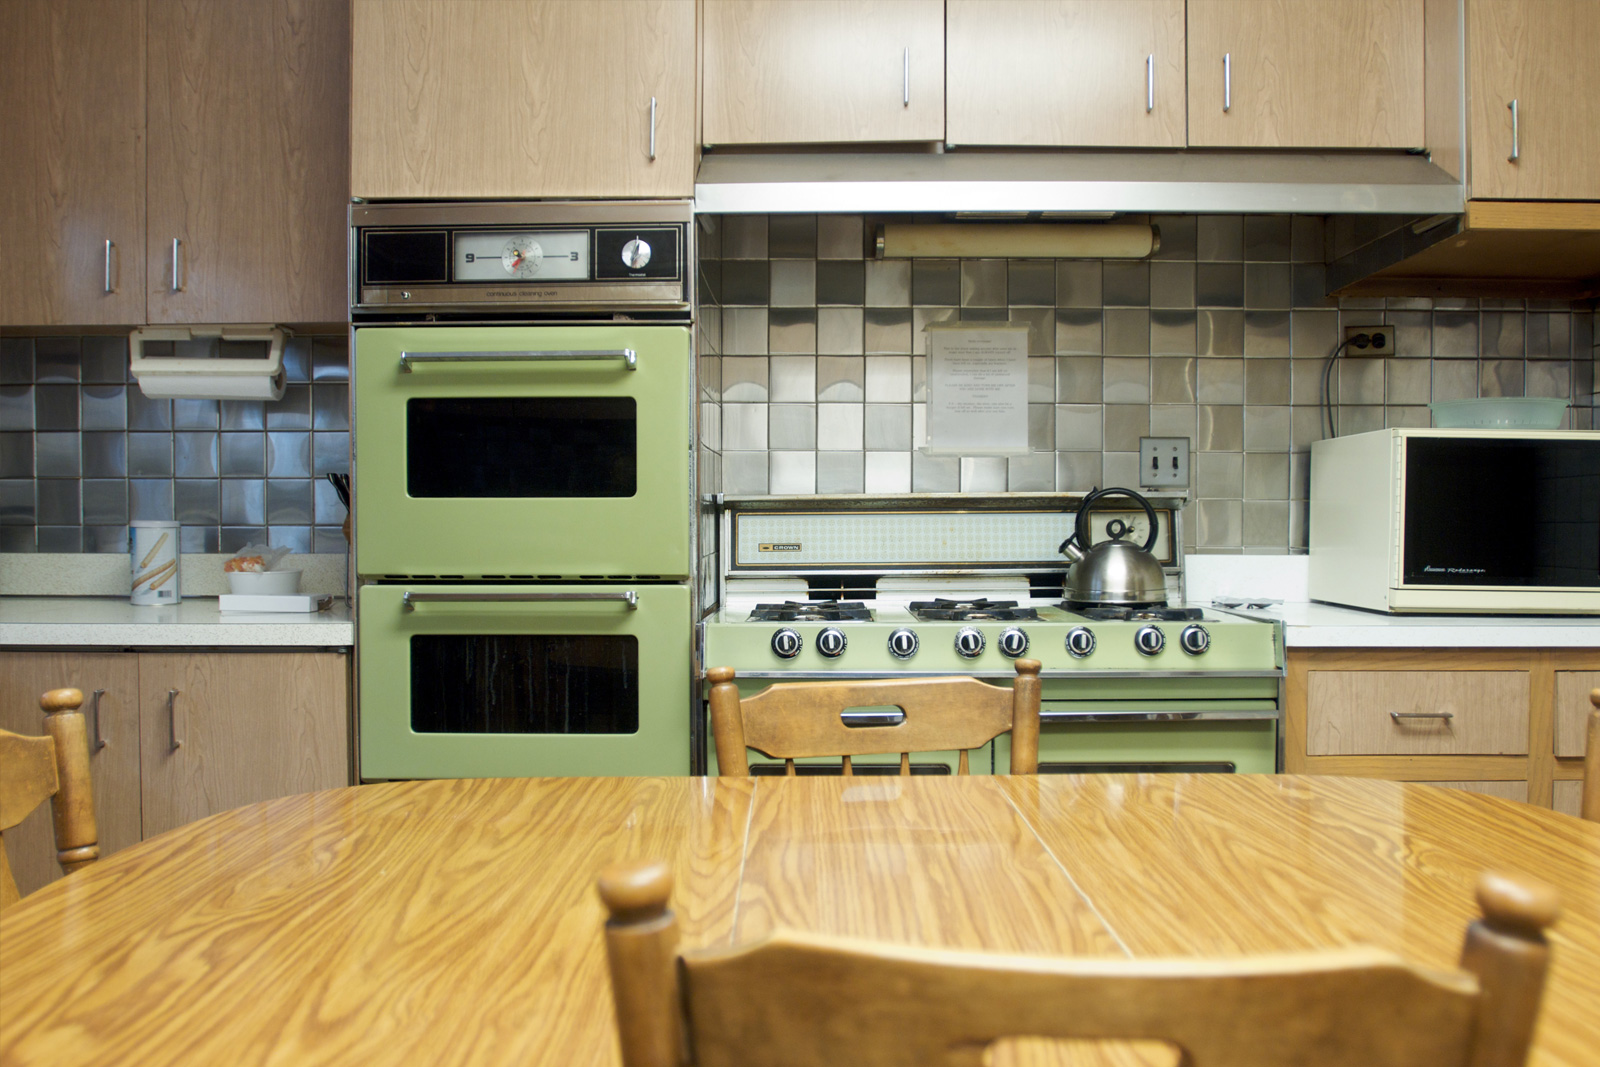 kitchen countertops best kitchen countertop material 6 Materials to Never Use in Your Kitchen